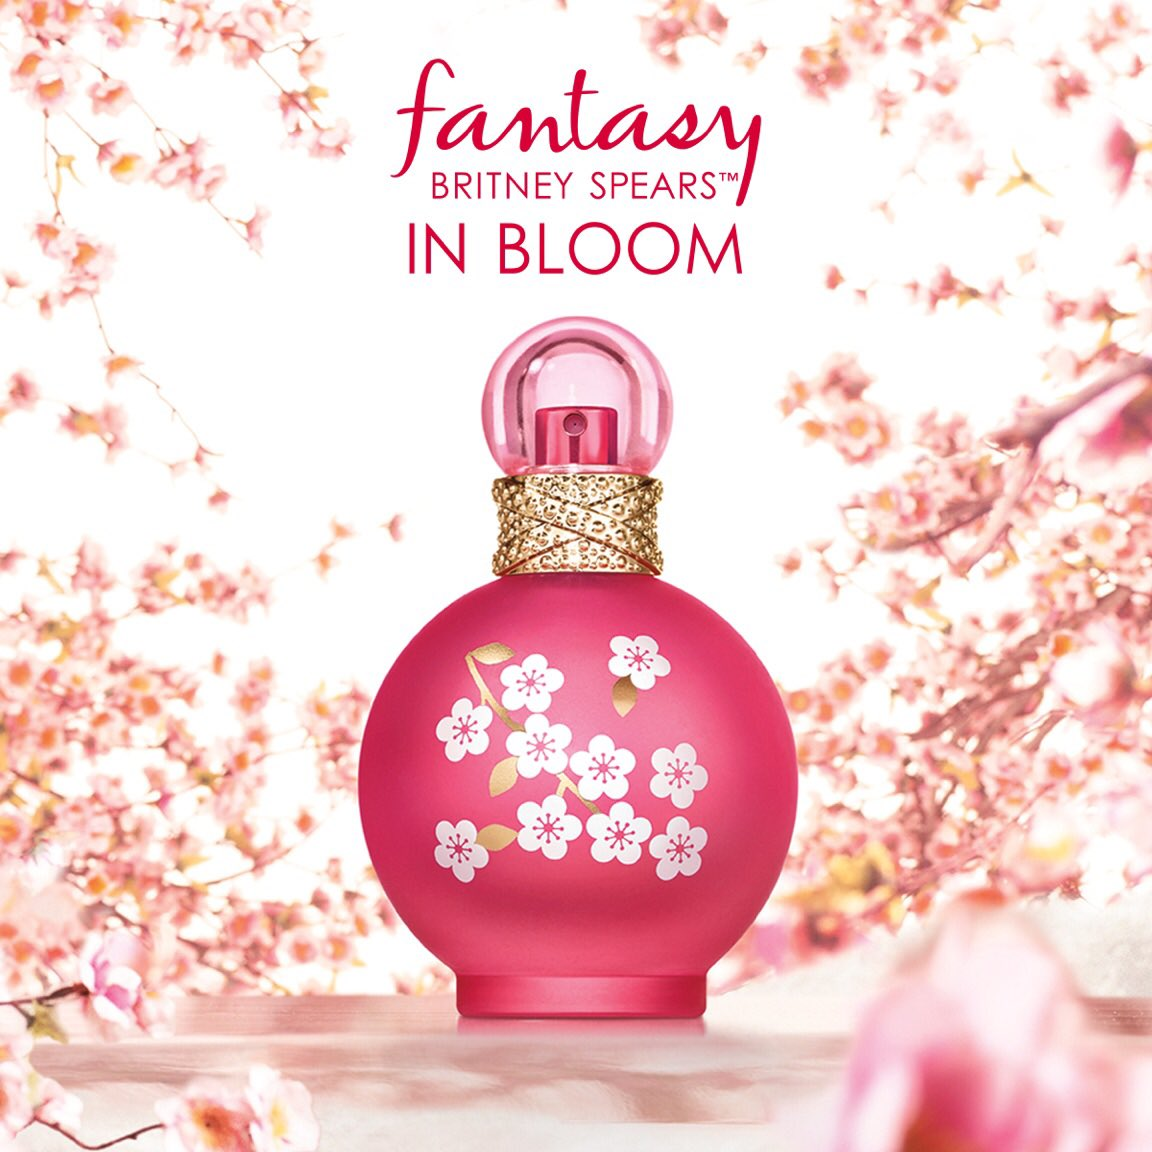 Fantasy in Bloom Britn...